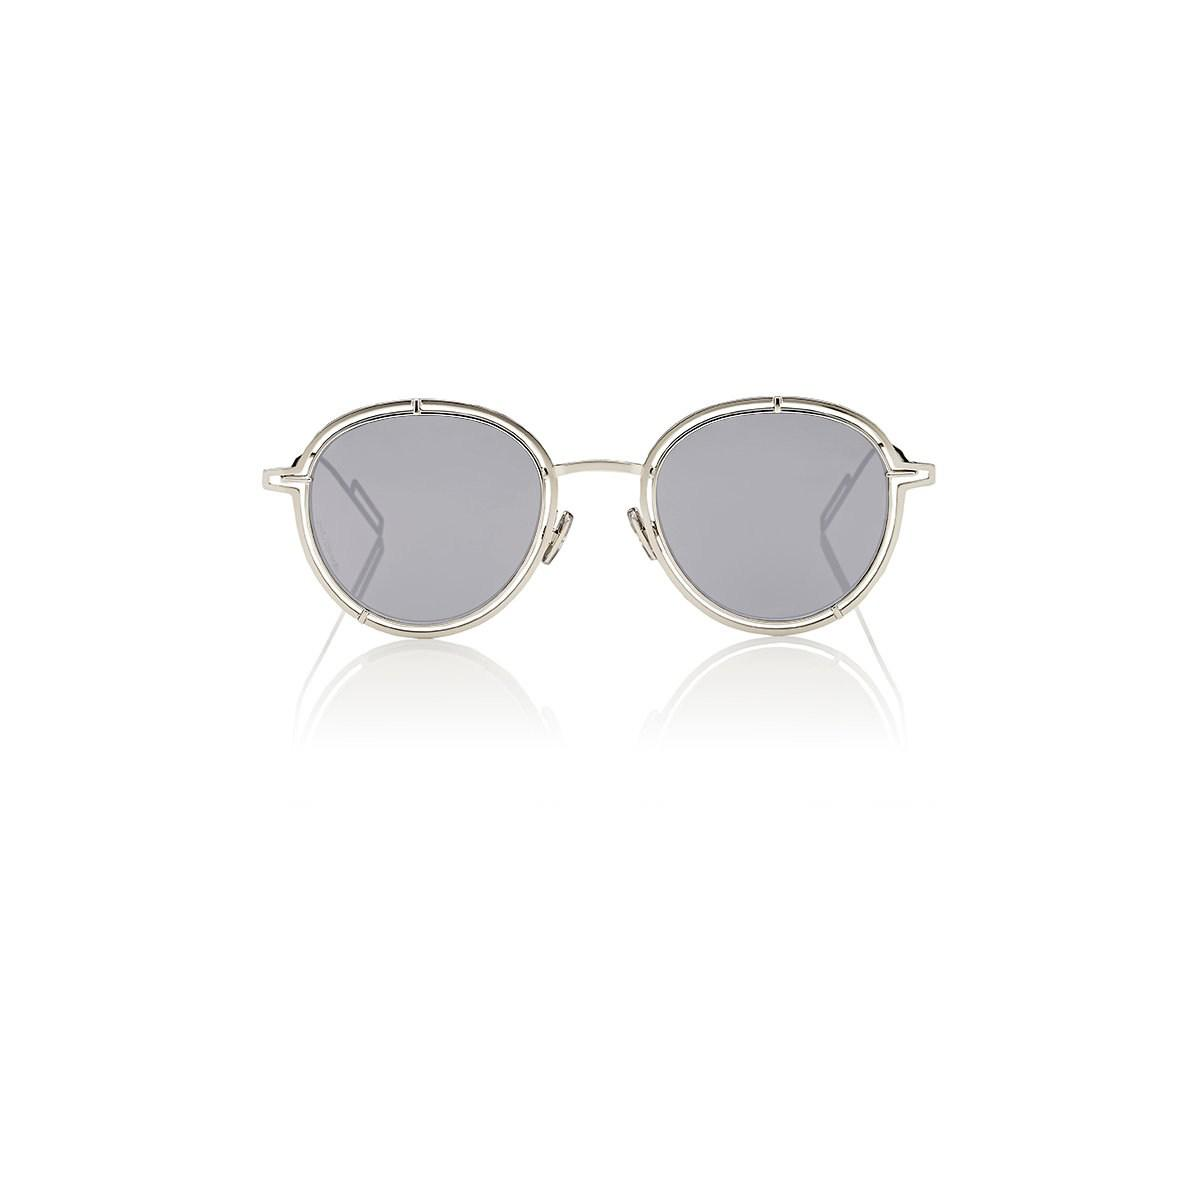 Dior Homme 0210s Sunglasses In Silver Metallic For Men